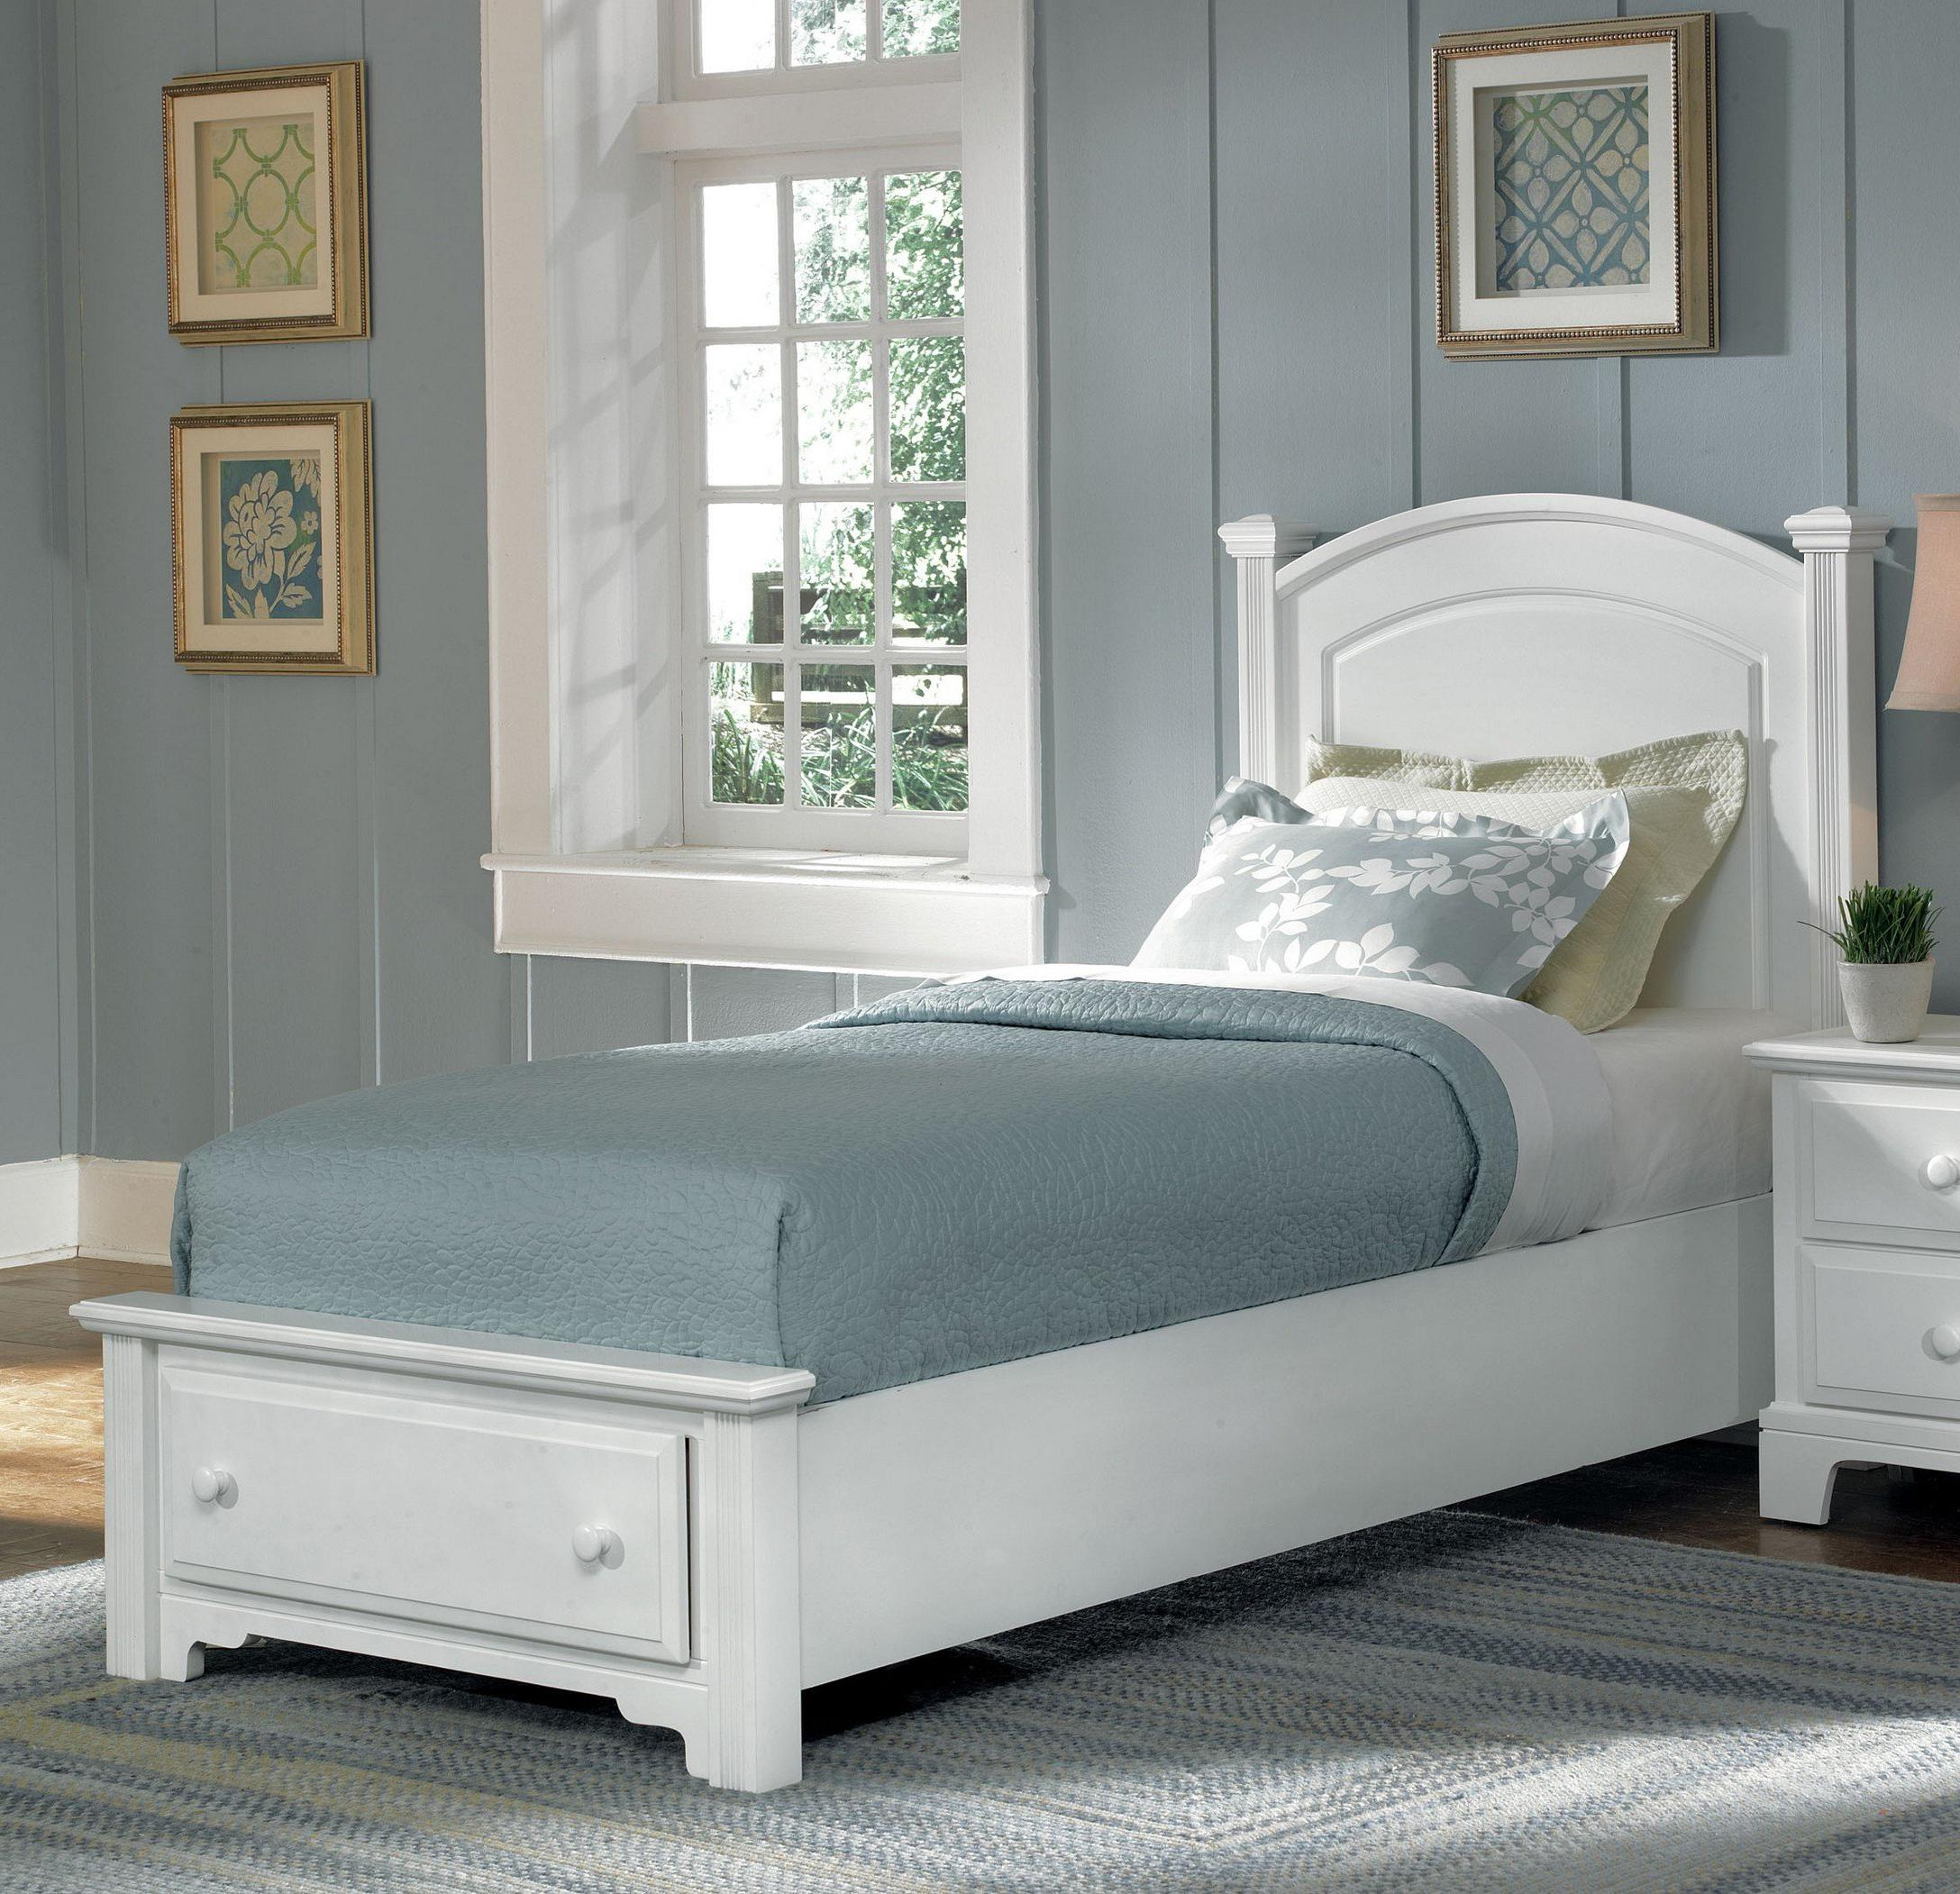 Hamilton/Franklin Twin Panel Storage Bed by Vaughan Bassett at Northeast Factory Direct